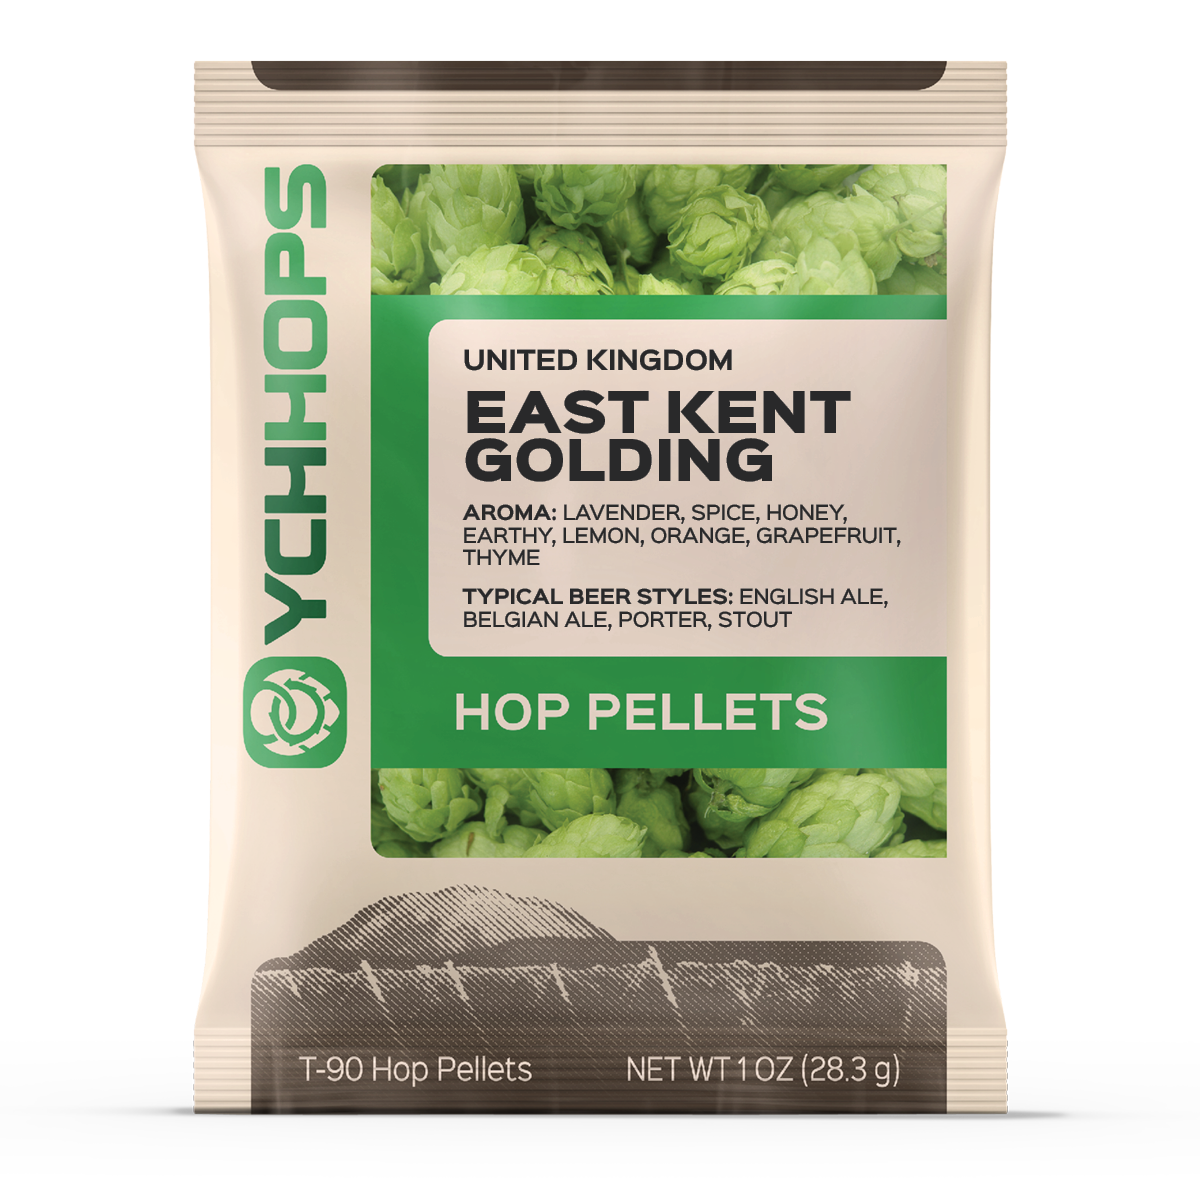 UK Kent Goldings:1oz Pellets (1)